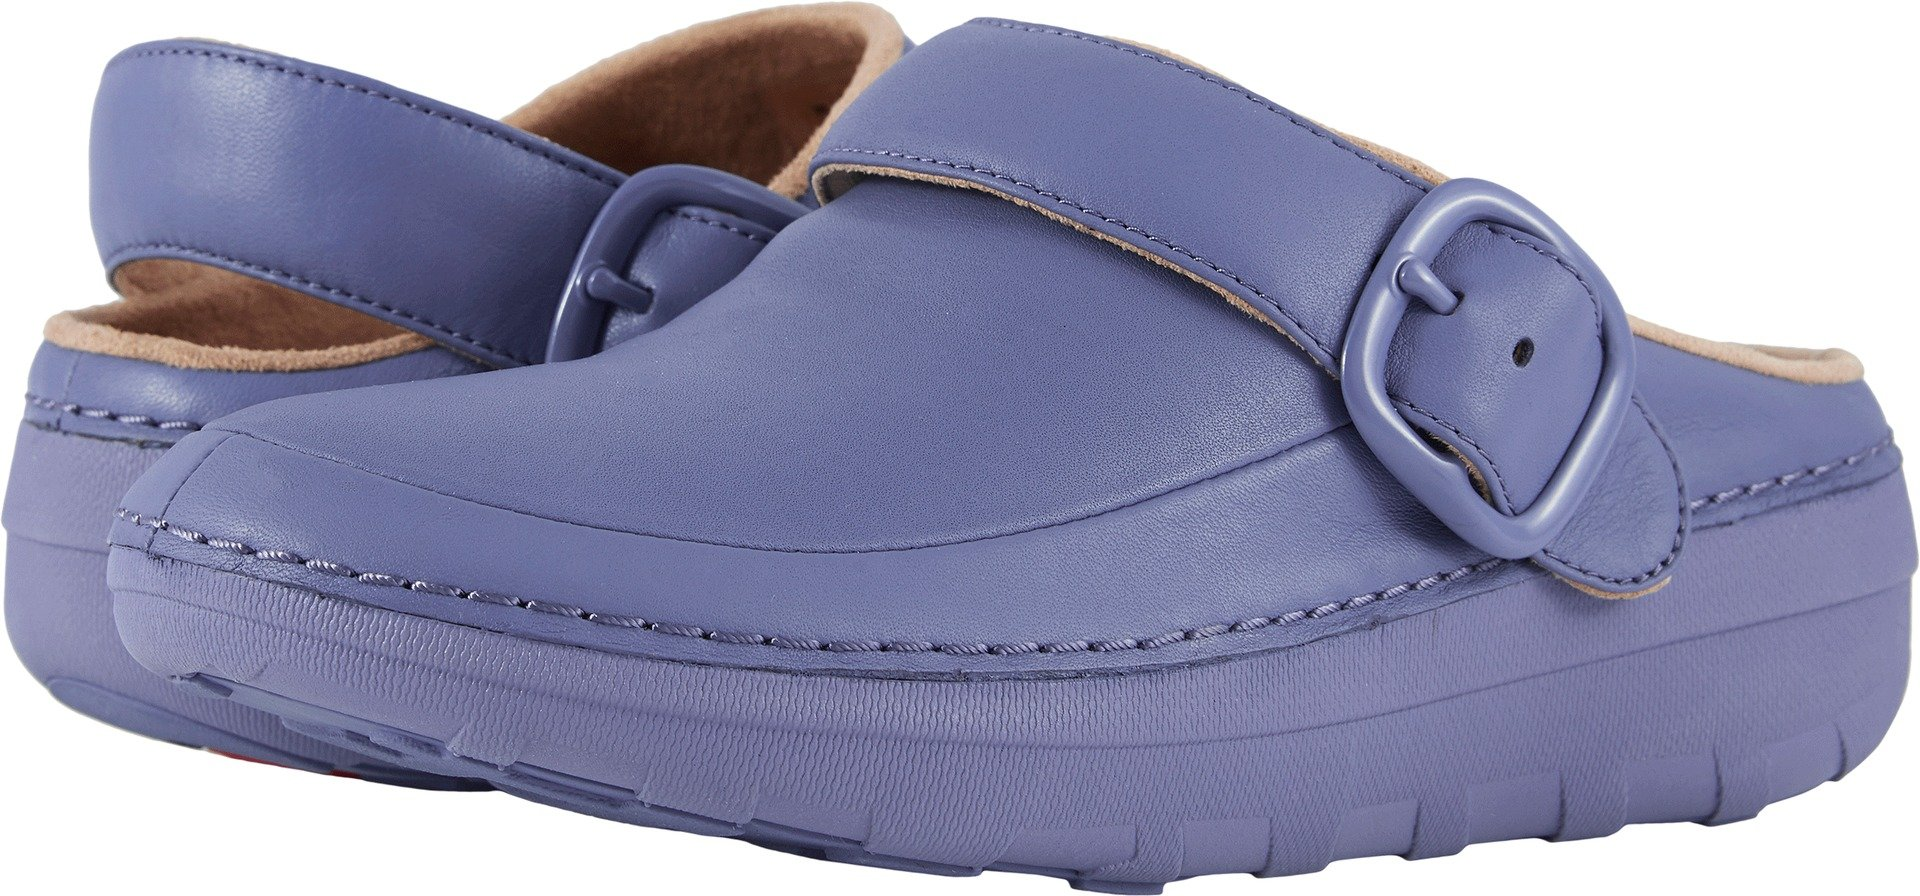 FitFlop Women's Gogh Pro Superlight Medical Professional Shoe, Indian Blue, 8 M US